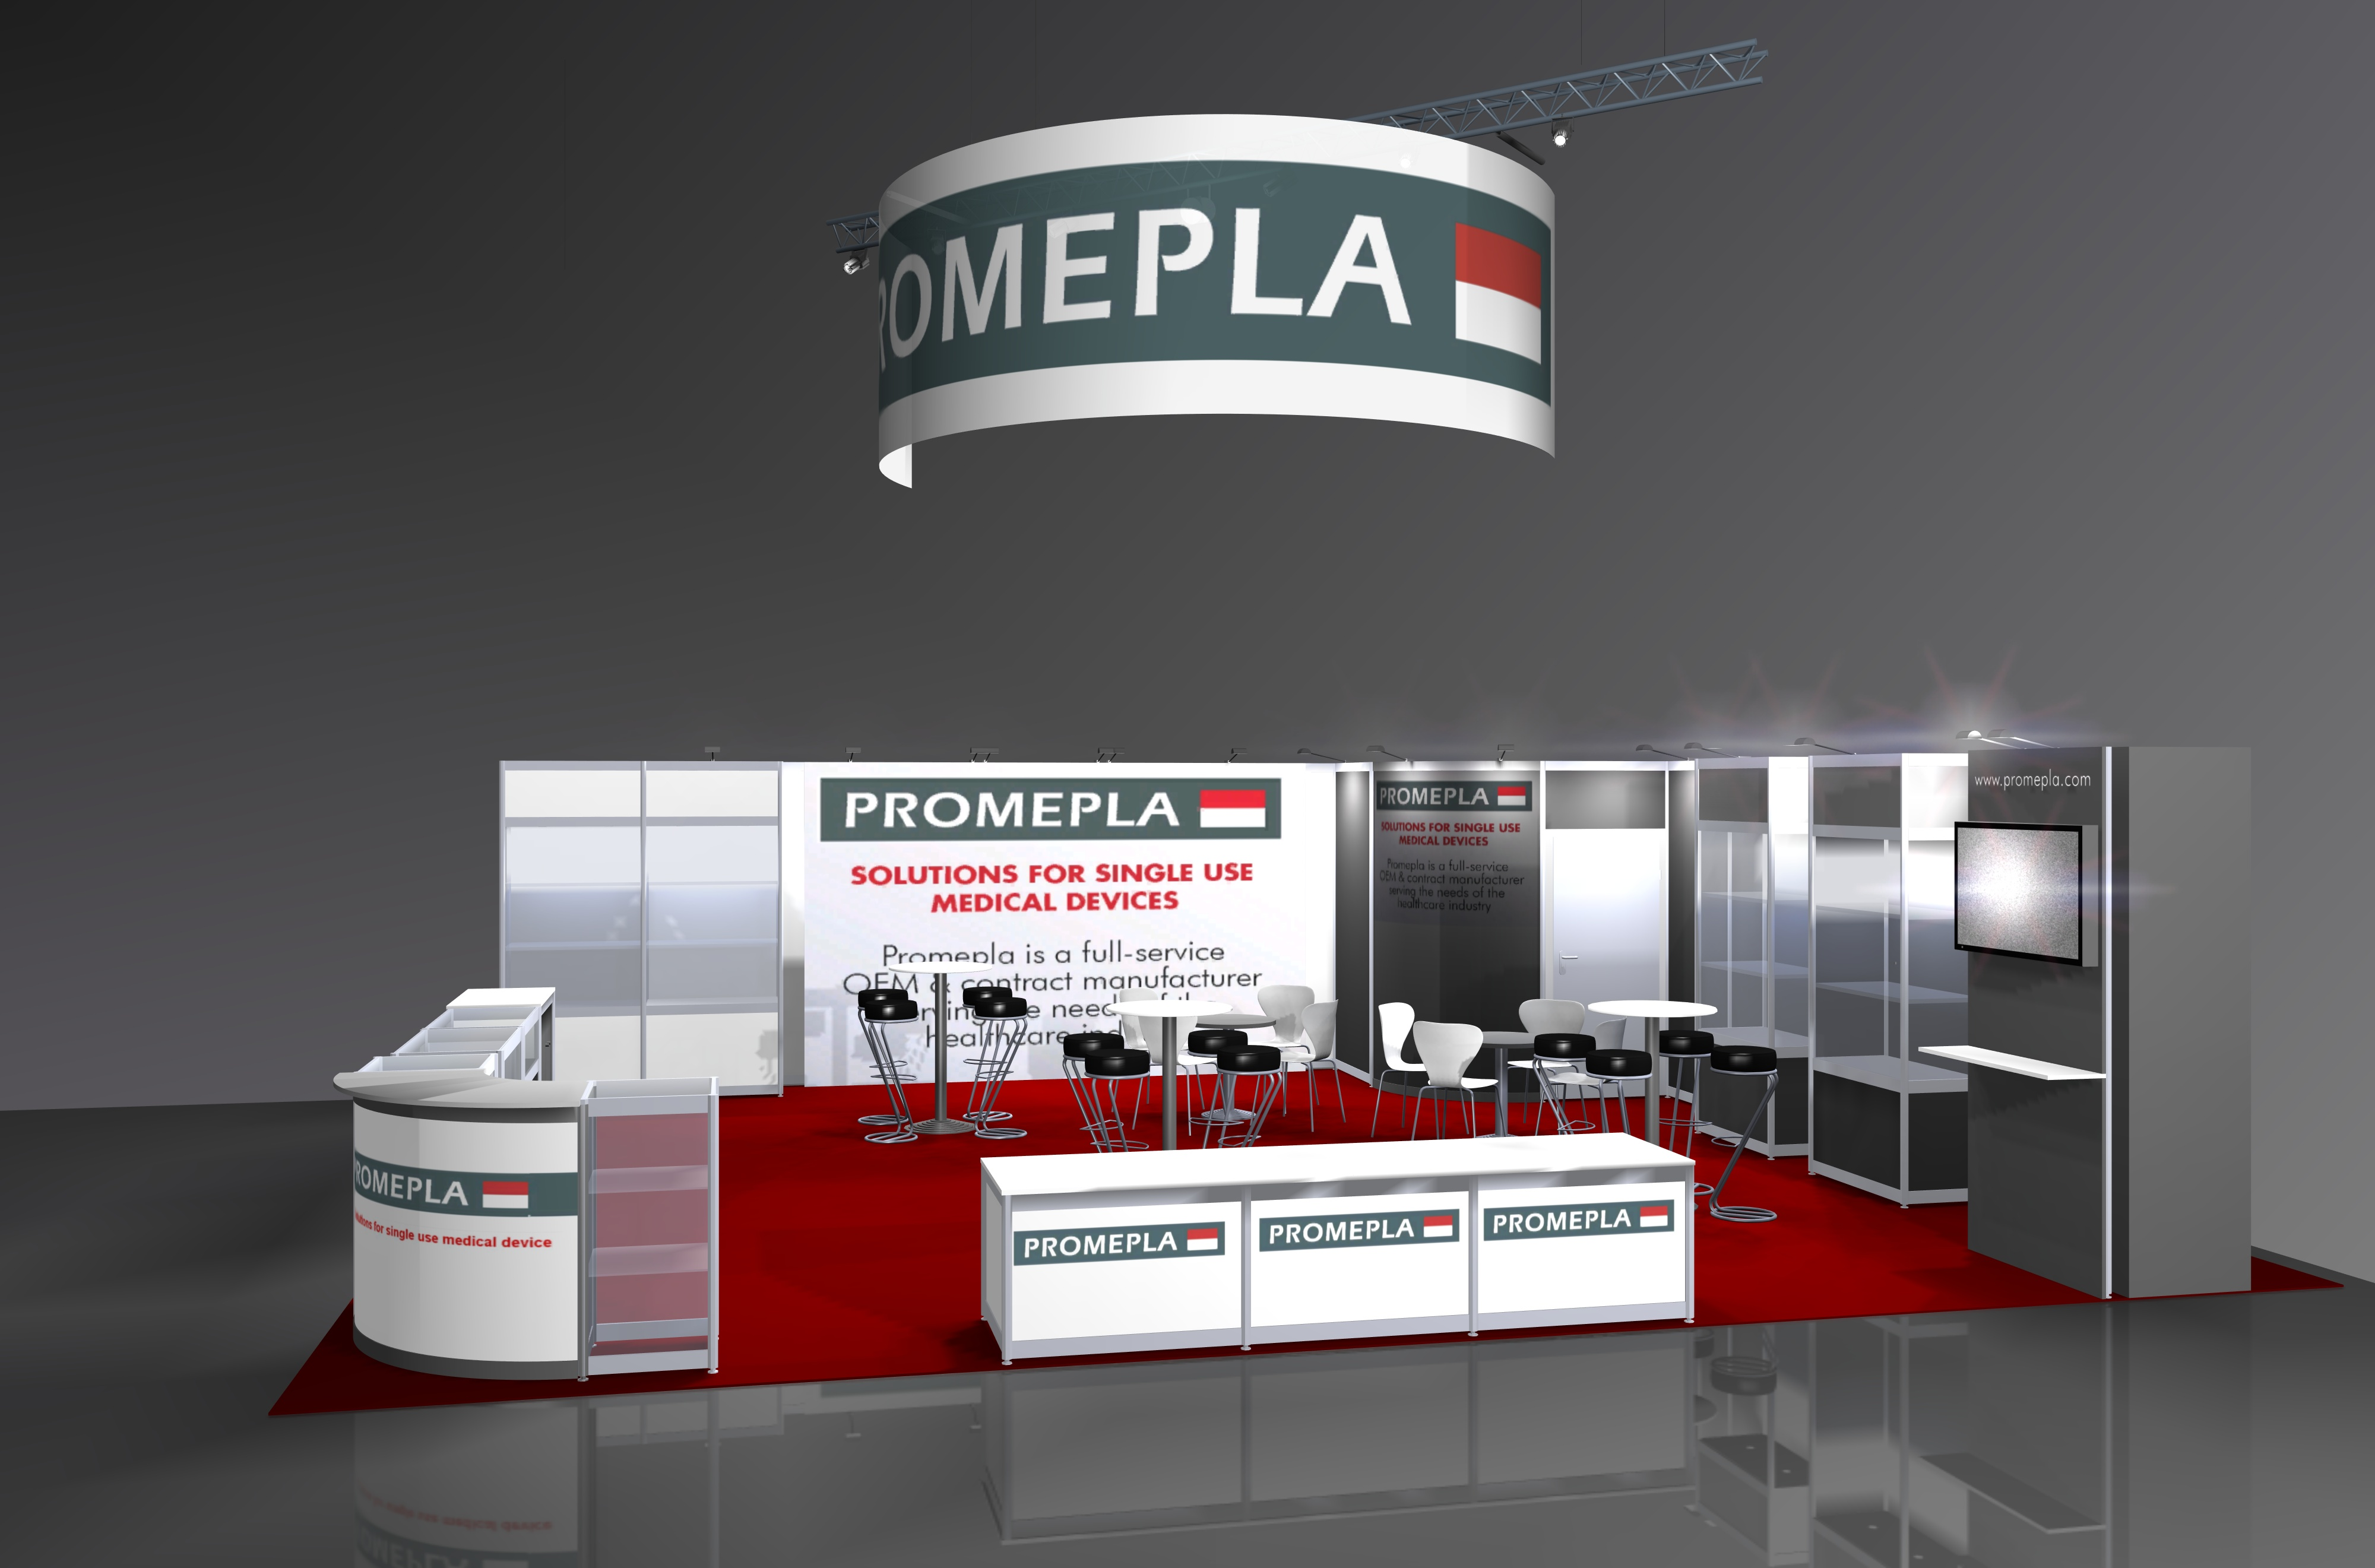 http://www.promepla.com/wp-content/uploads/2016/11/COMPAMED-STAND-PROMEPLA.jpg